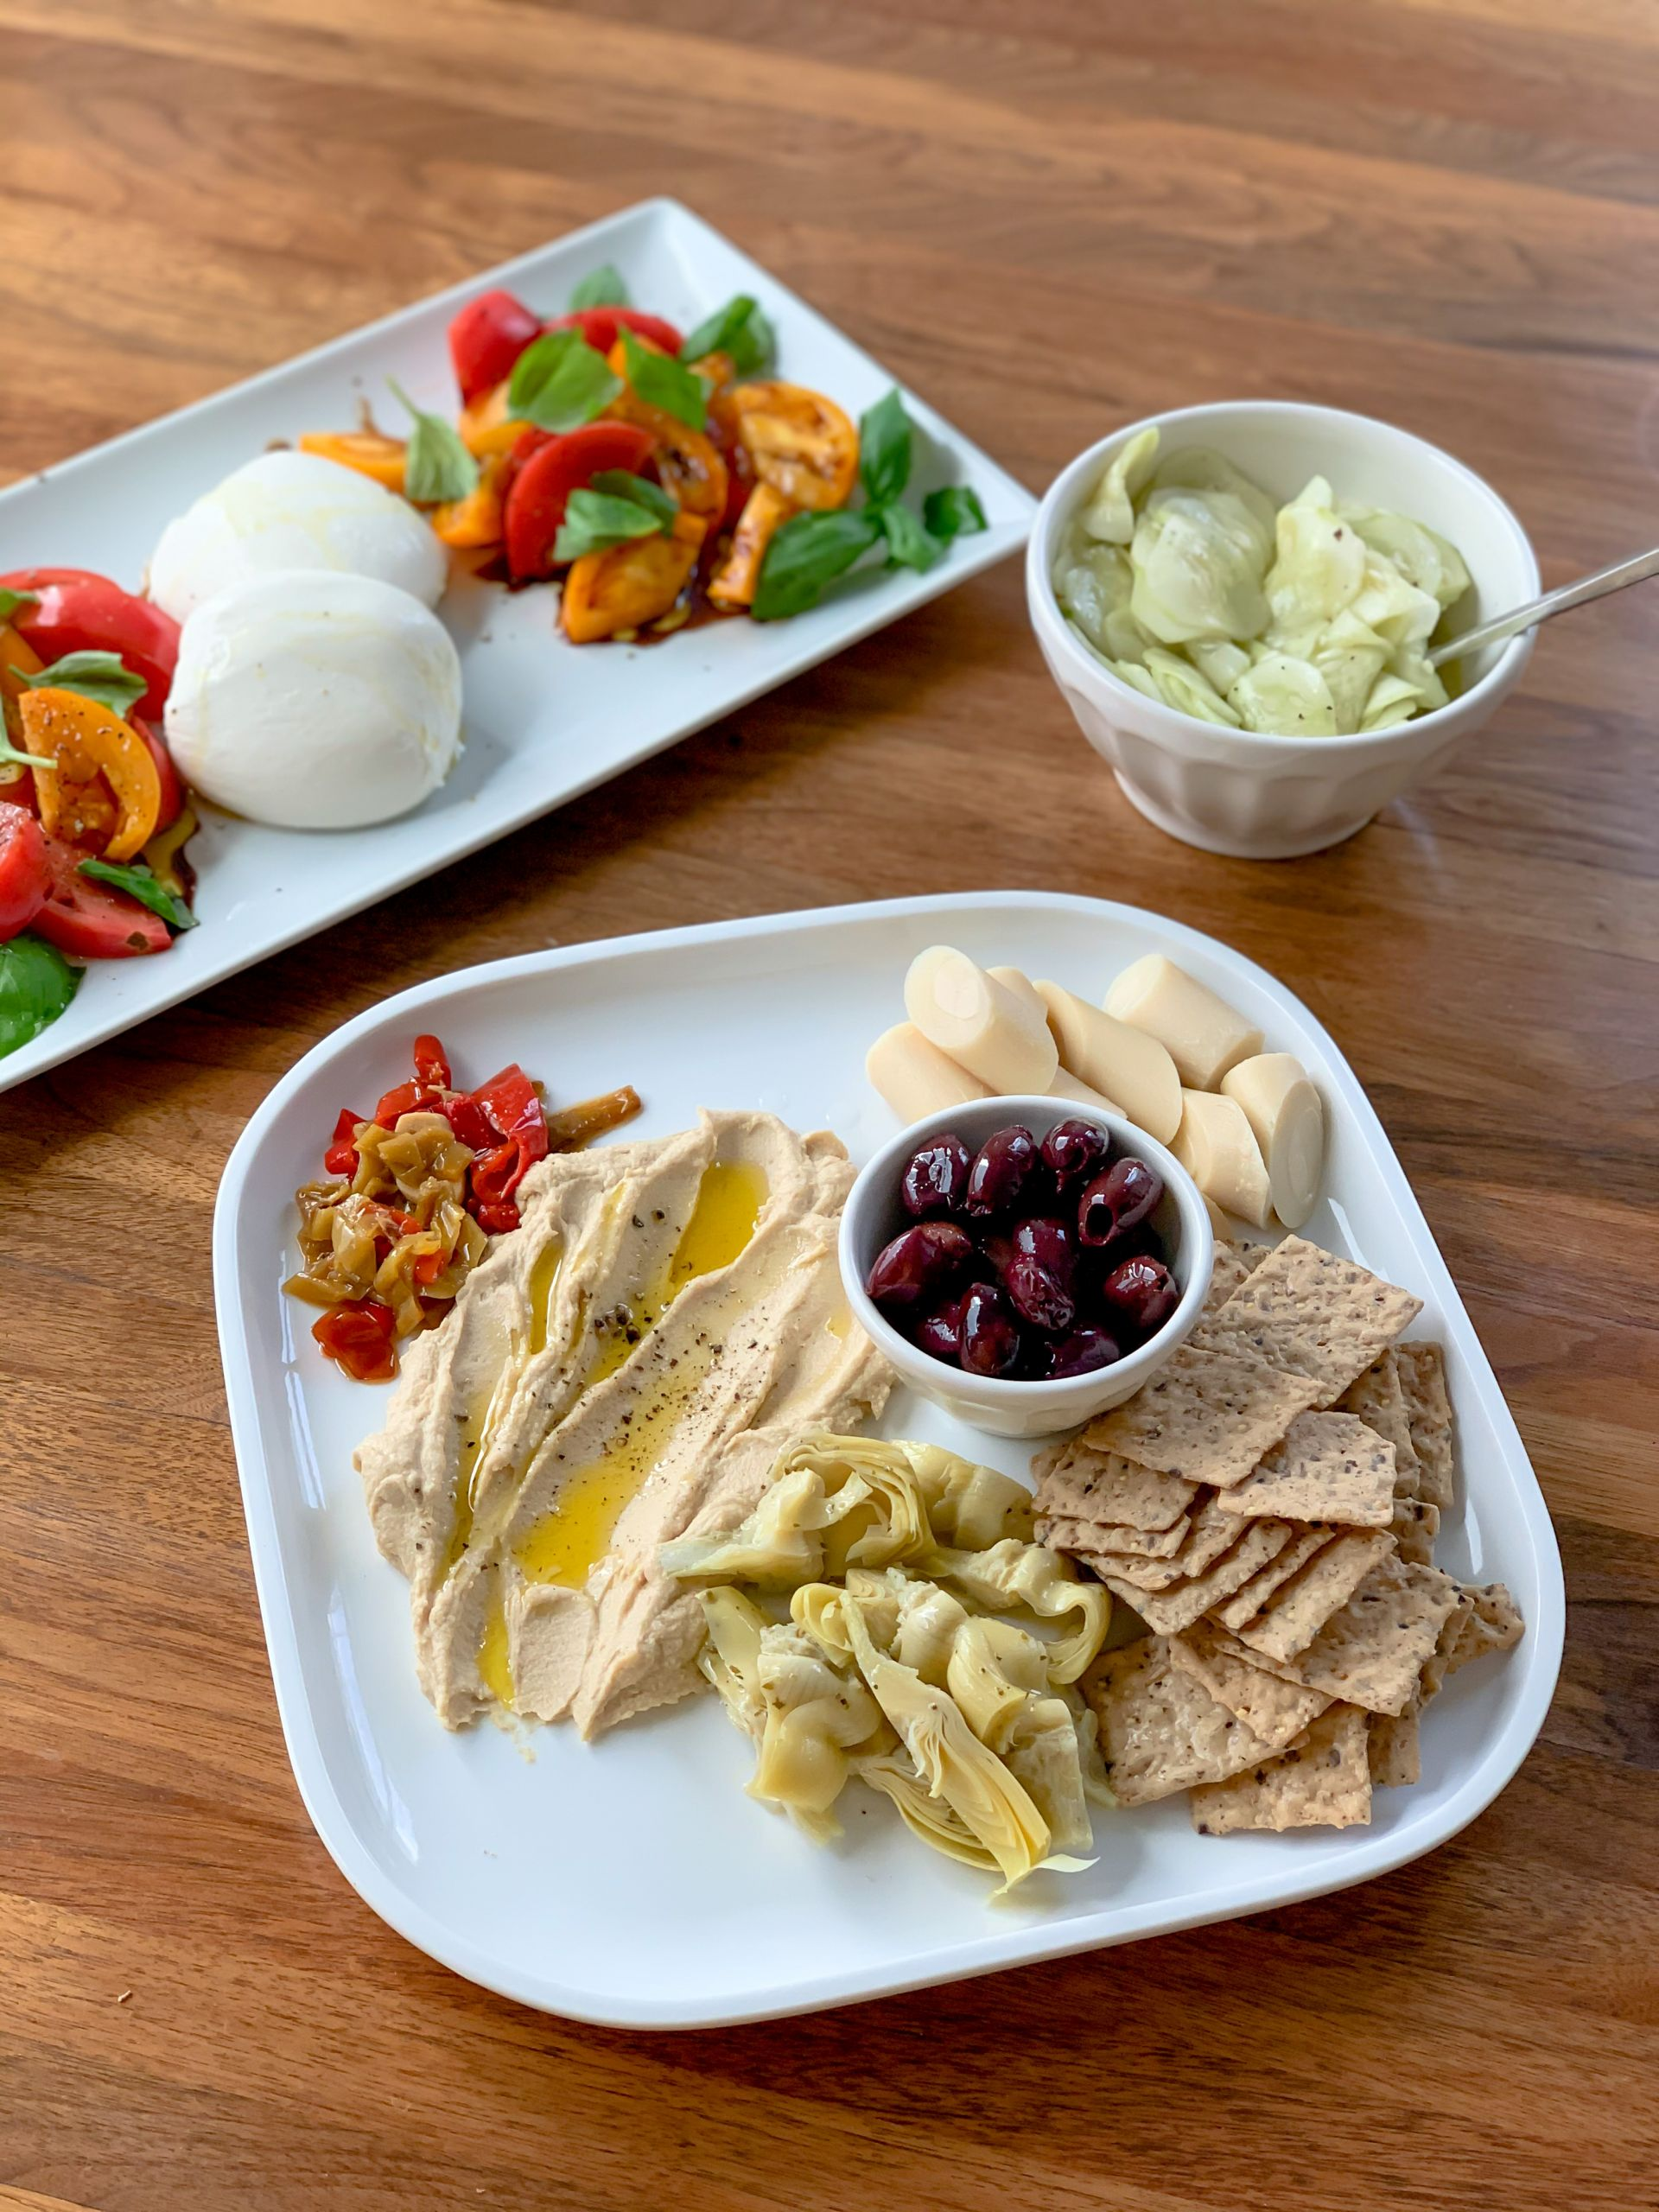 mezze platter - Mediterranean Meal - Simple Eating - Lauren Schwaiger Healthy Lifestyle Blog